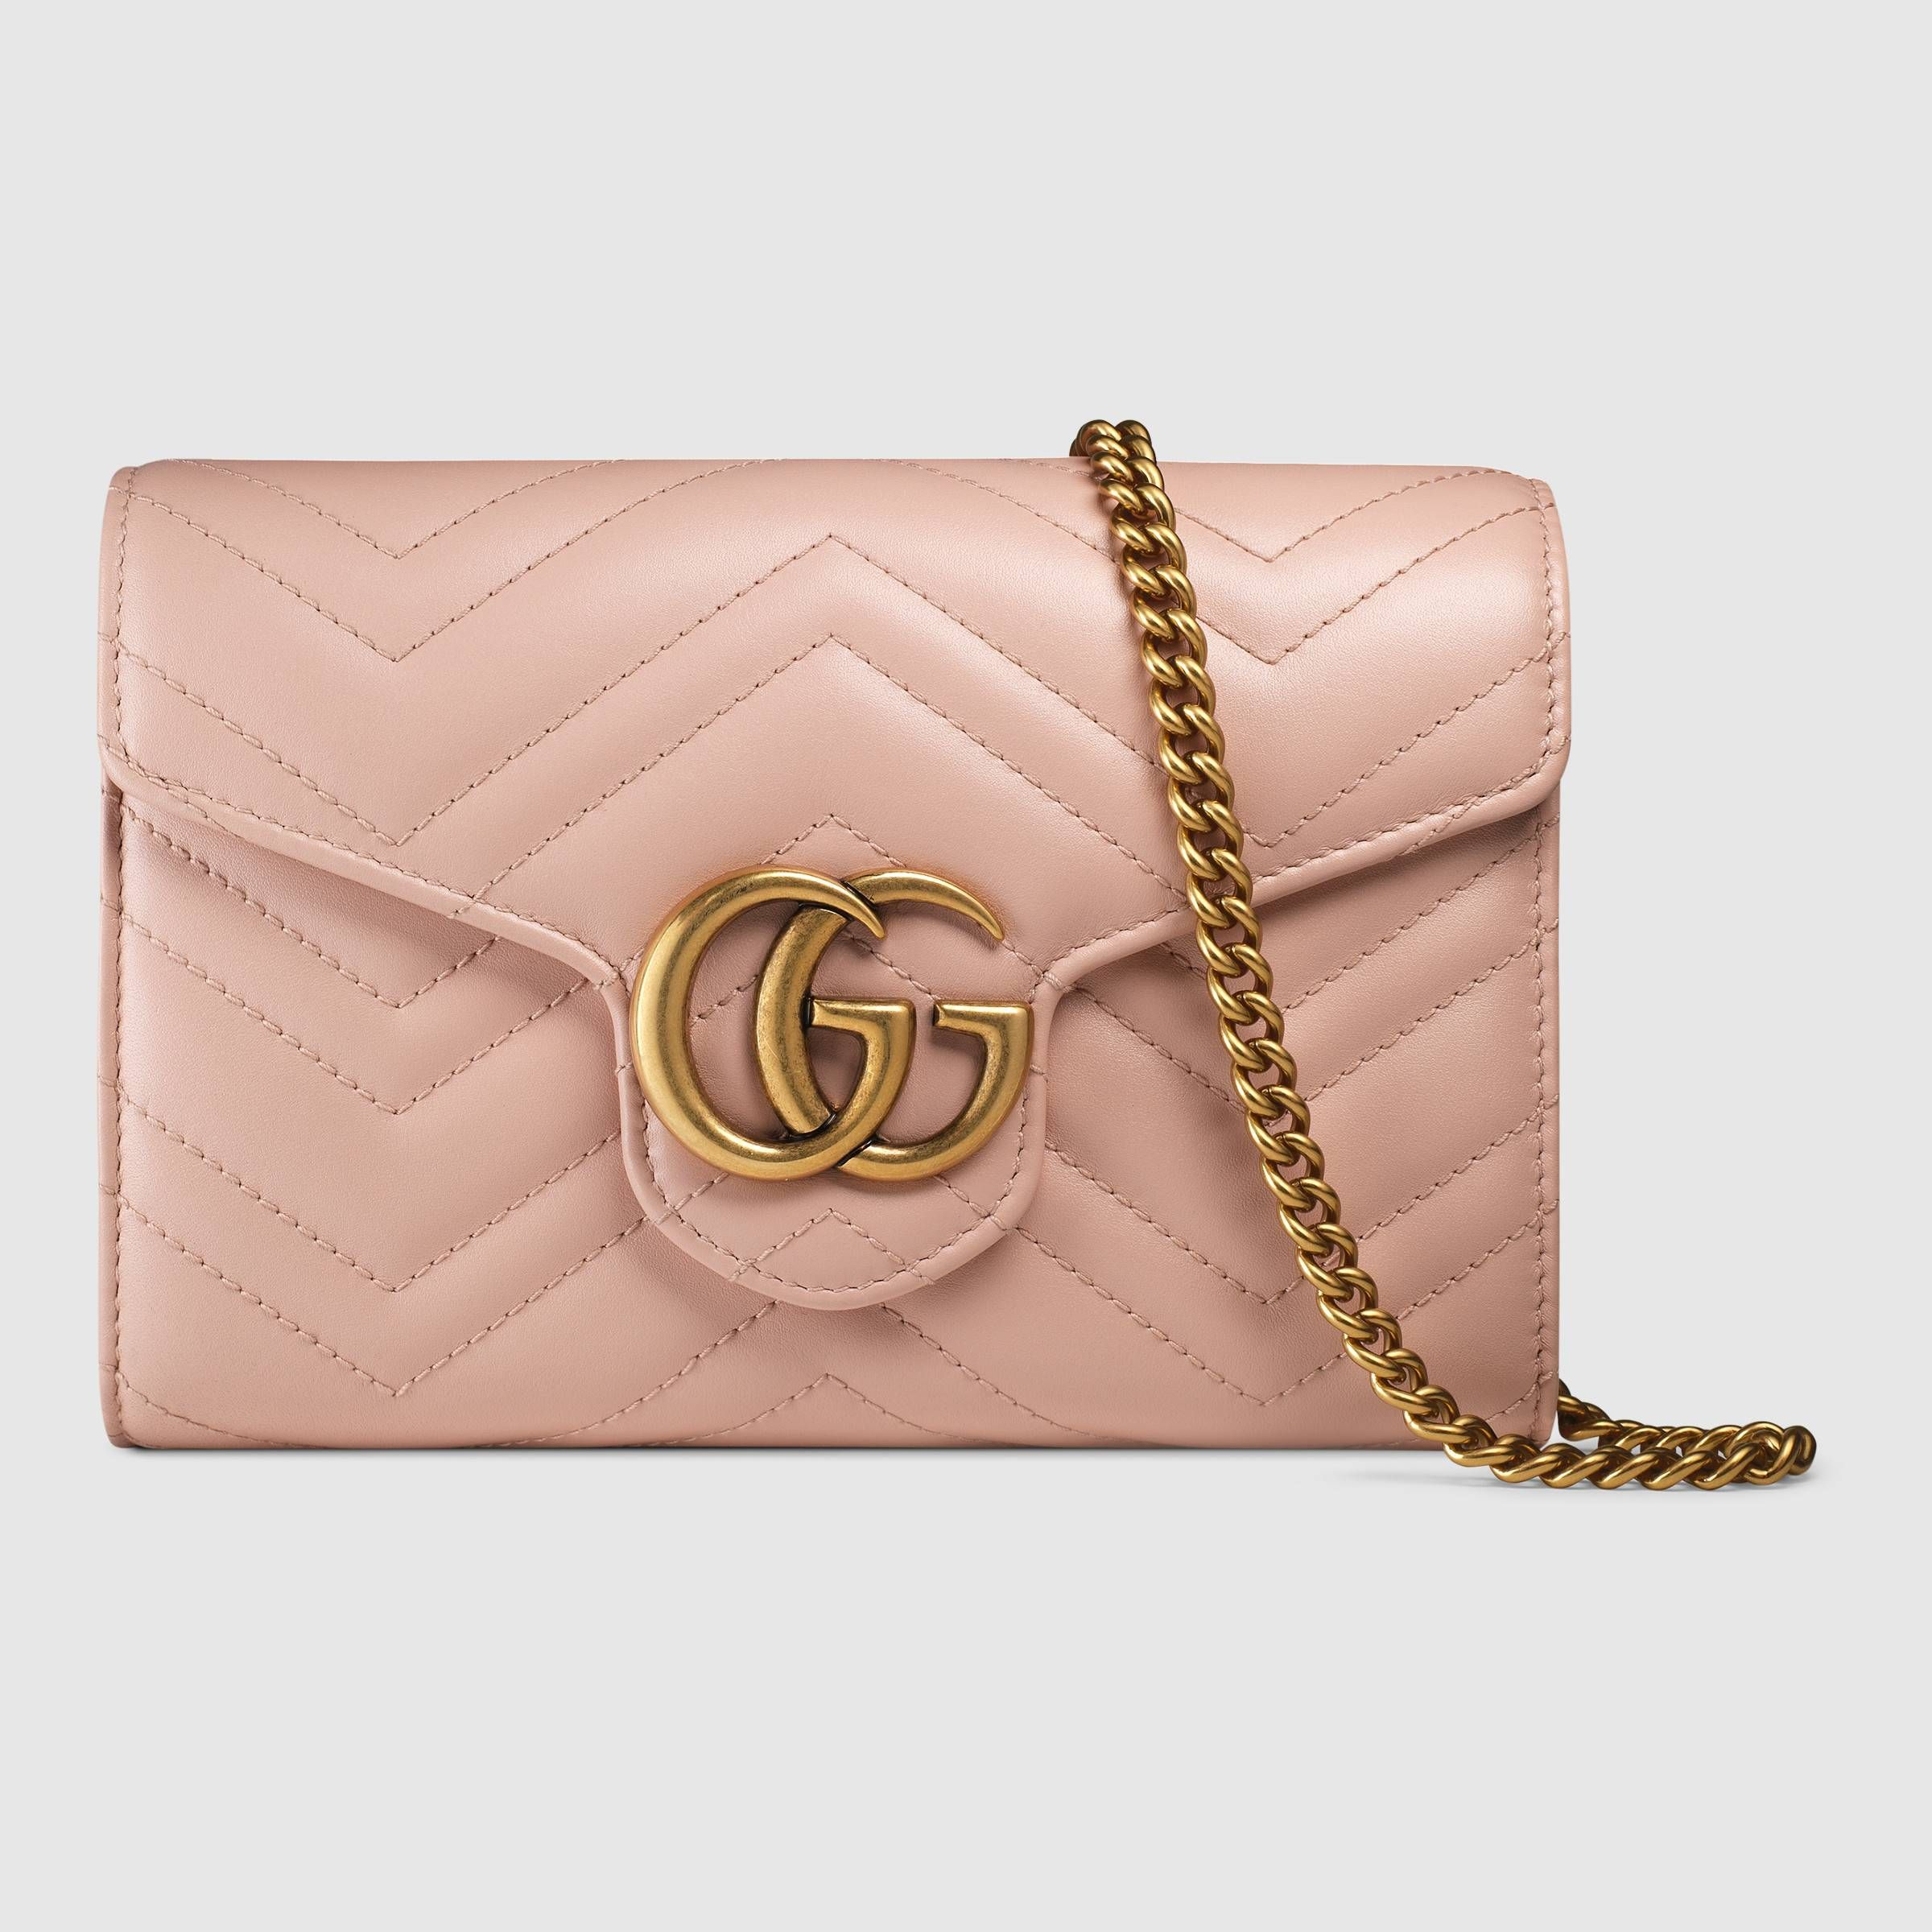 1ae4b032d4f096 GG Marmont matelassé mini bag in Pink matelassé chevron leather with GG on  the back | Gucci Women's Wallets & Small Accessories